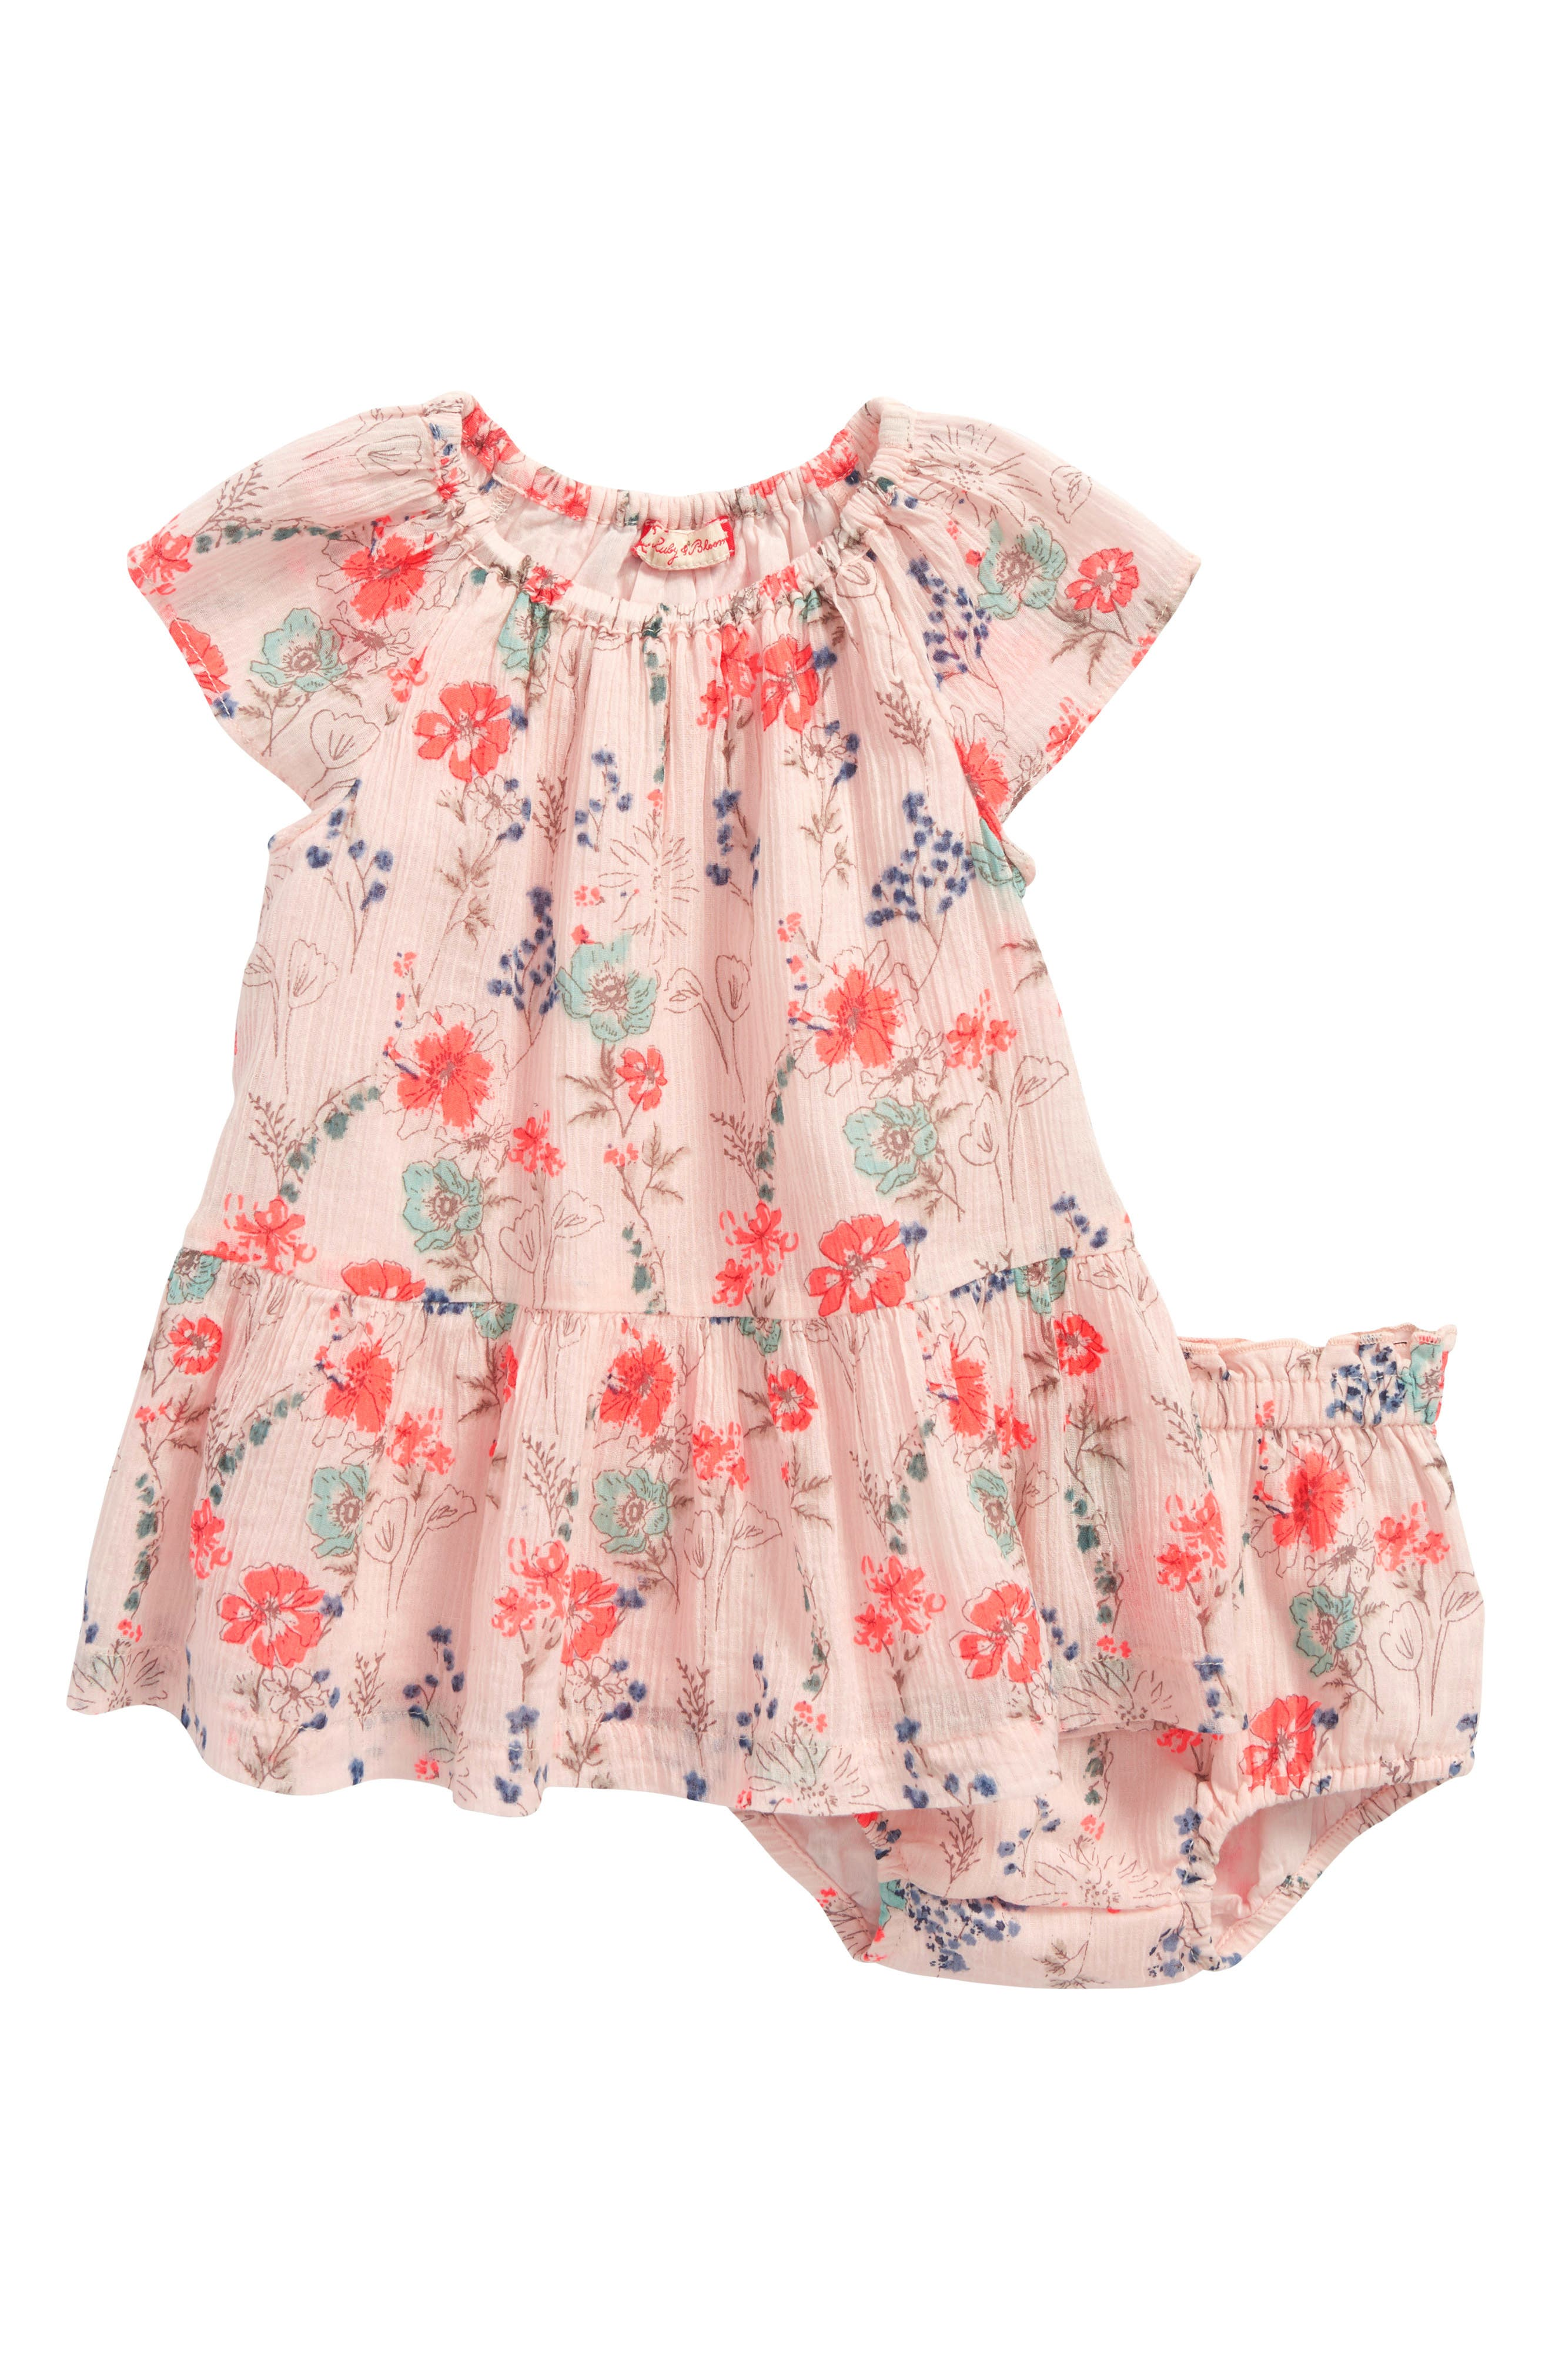 Floral Swing Dress,                         Main,                         color, Pink Peach Spaced Garden